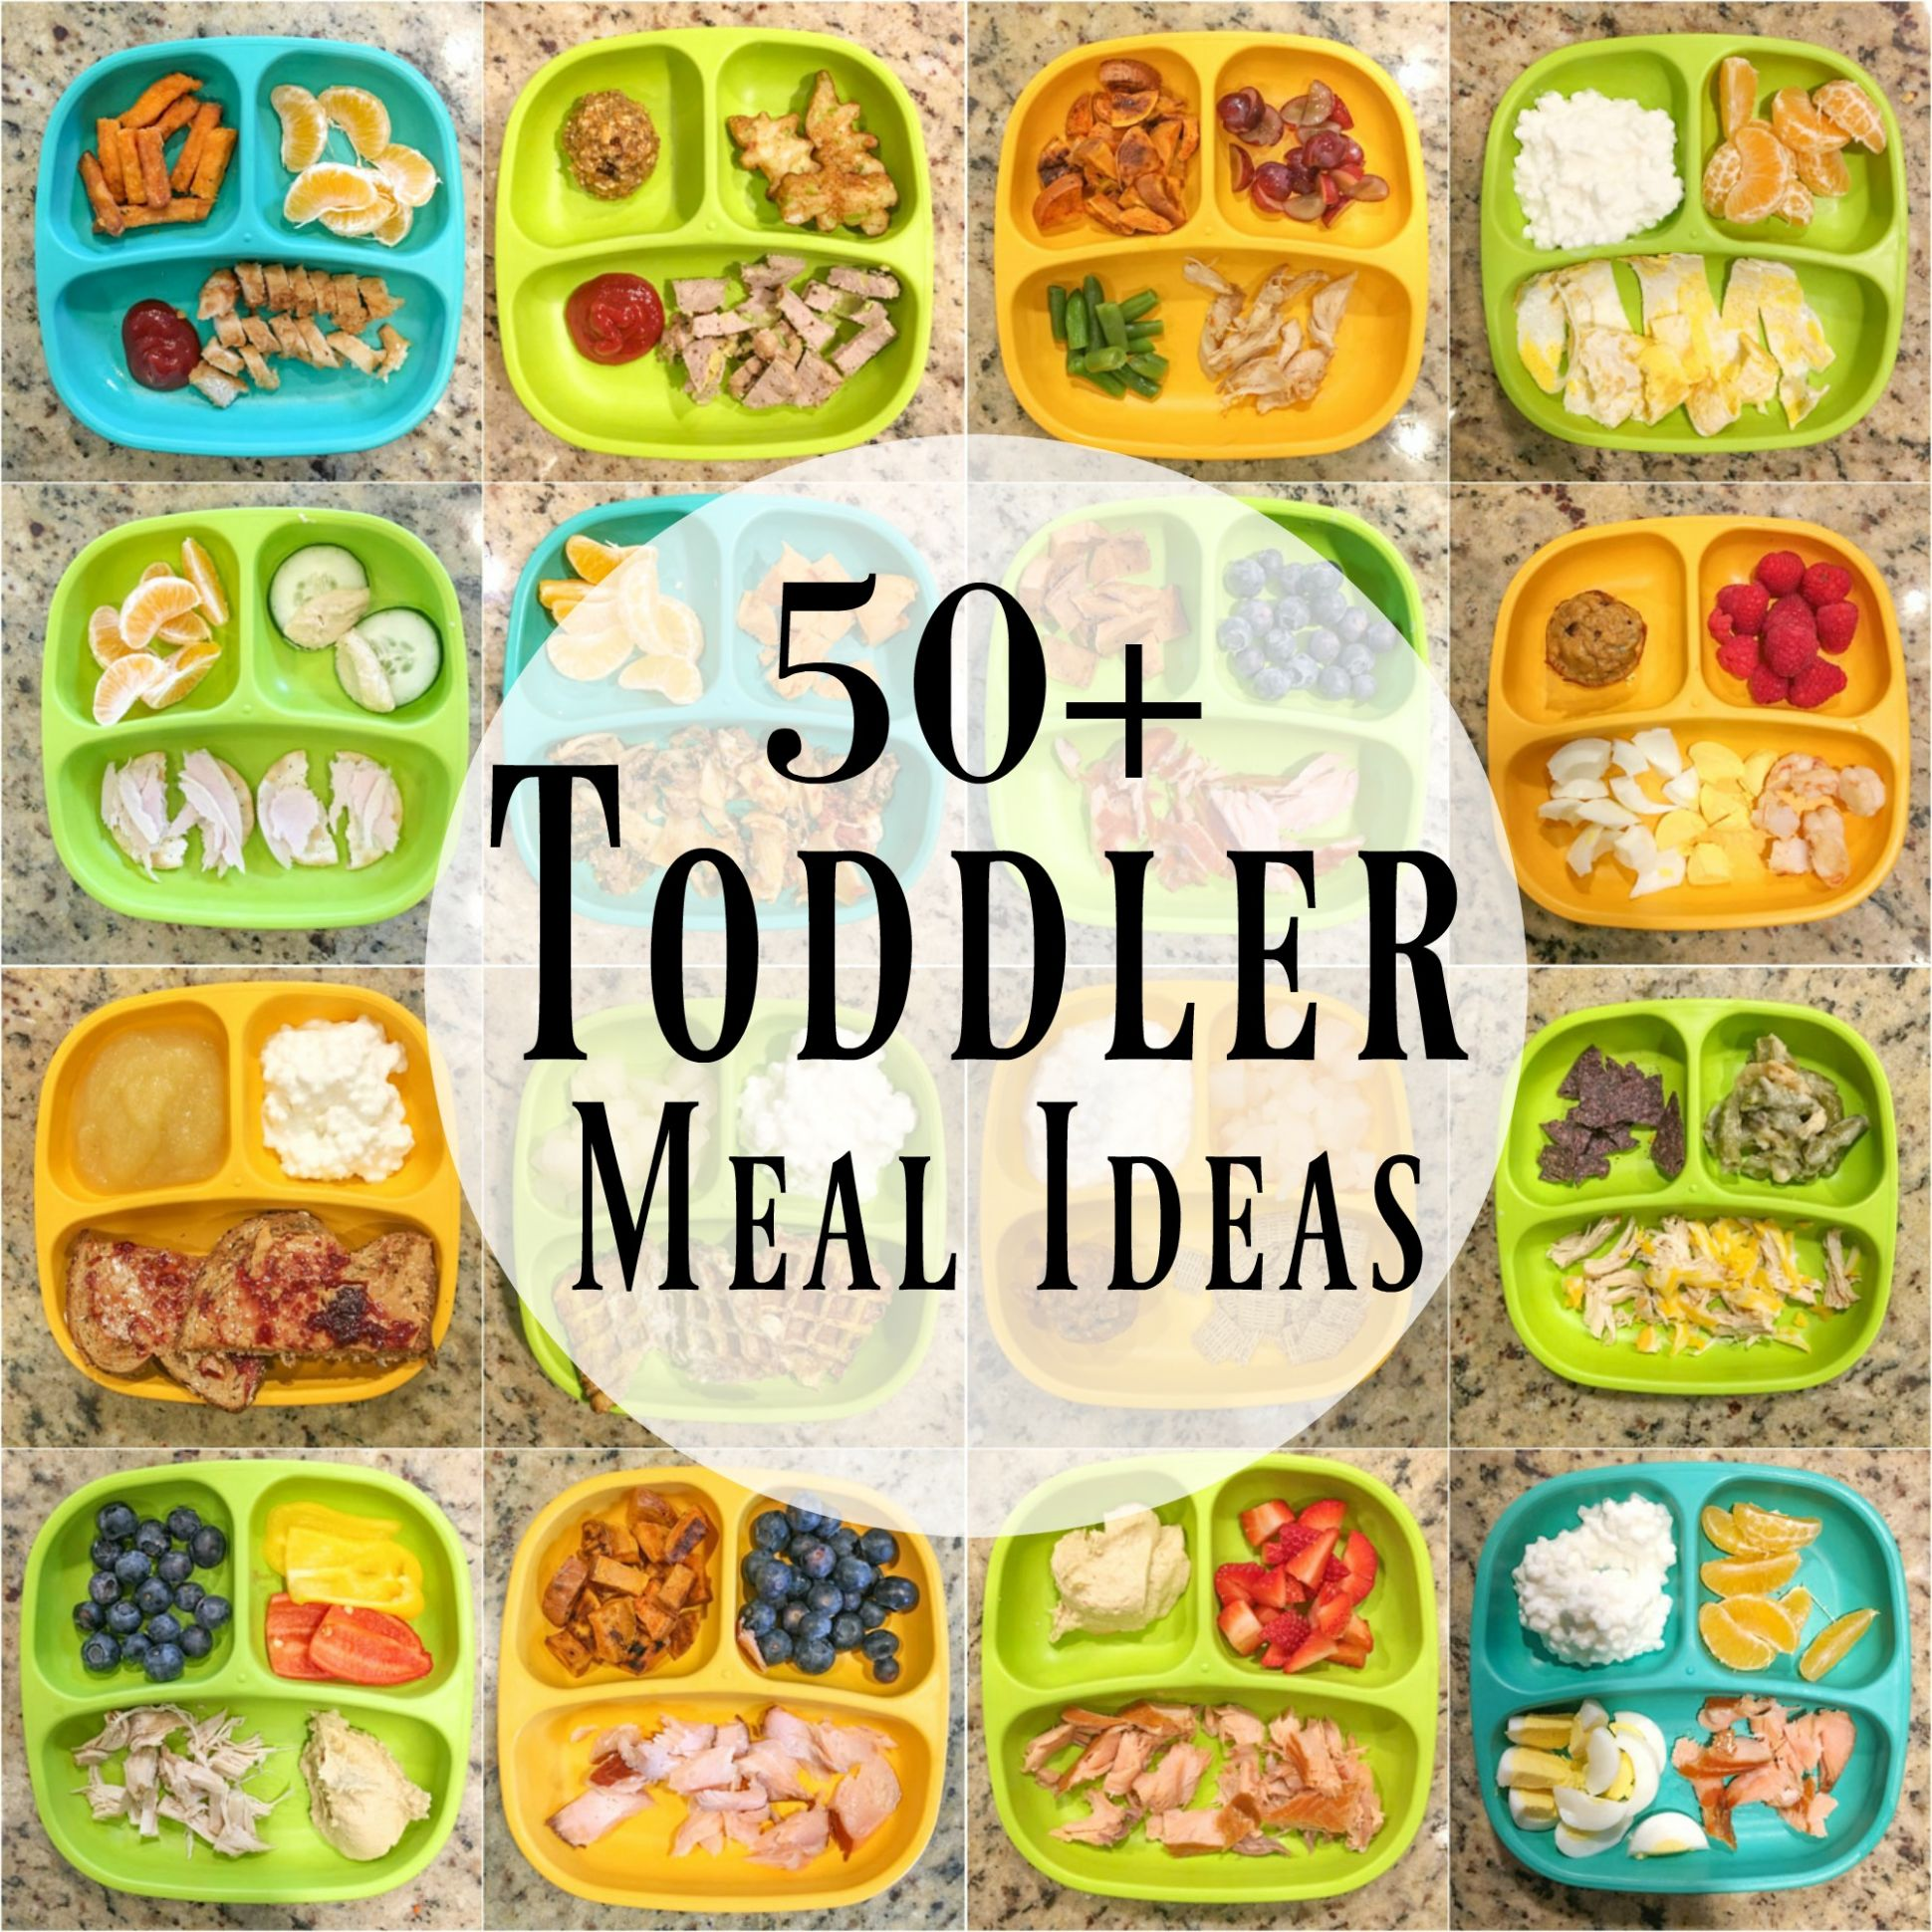 8 Healthy Toddler Meal Ideas |  Lean Green Bean - Food Recipes For Toddlers